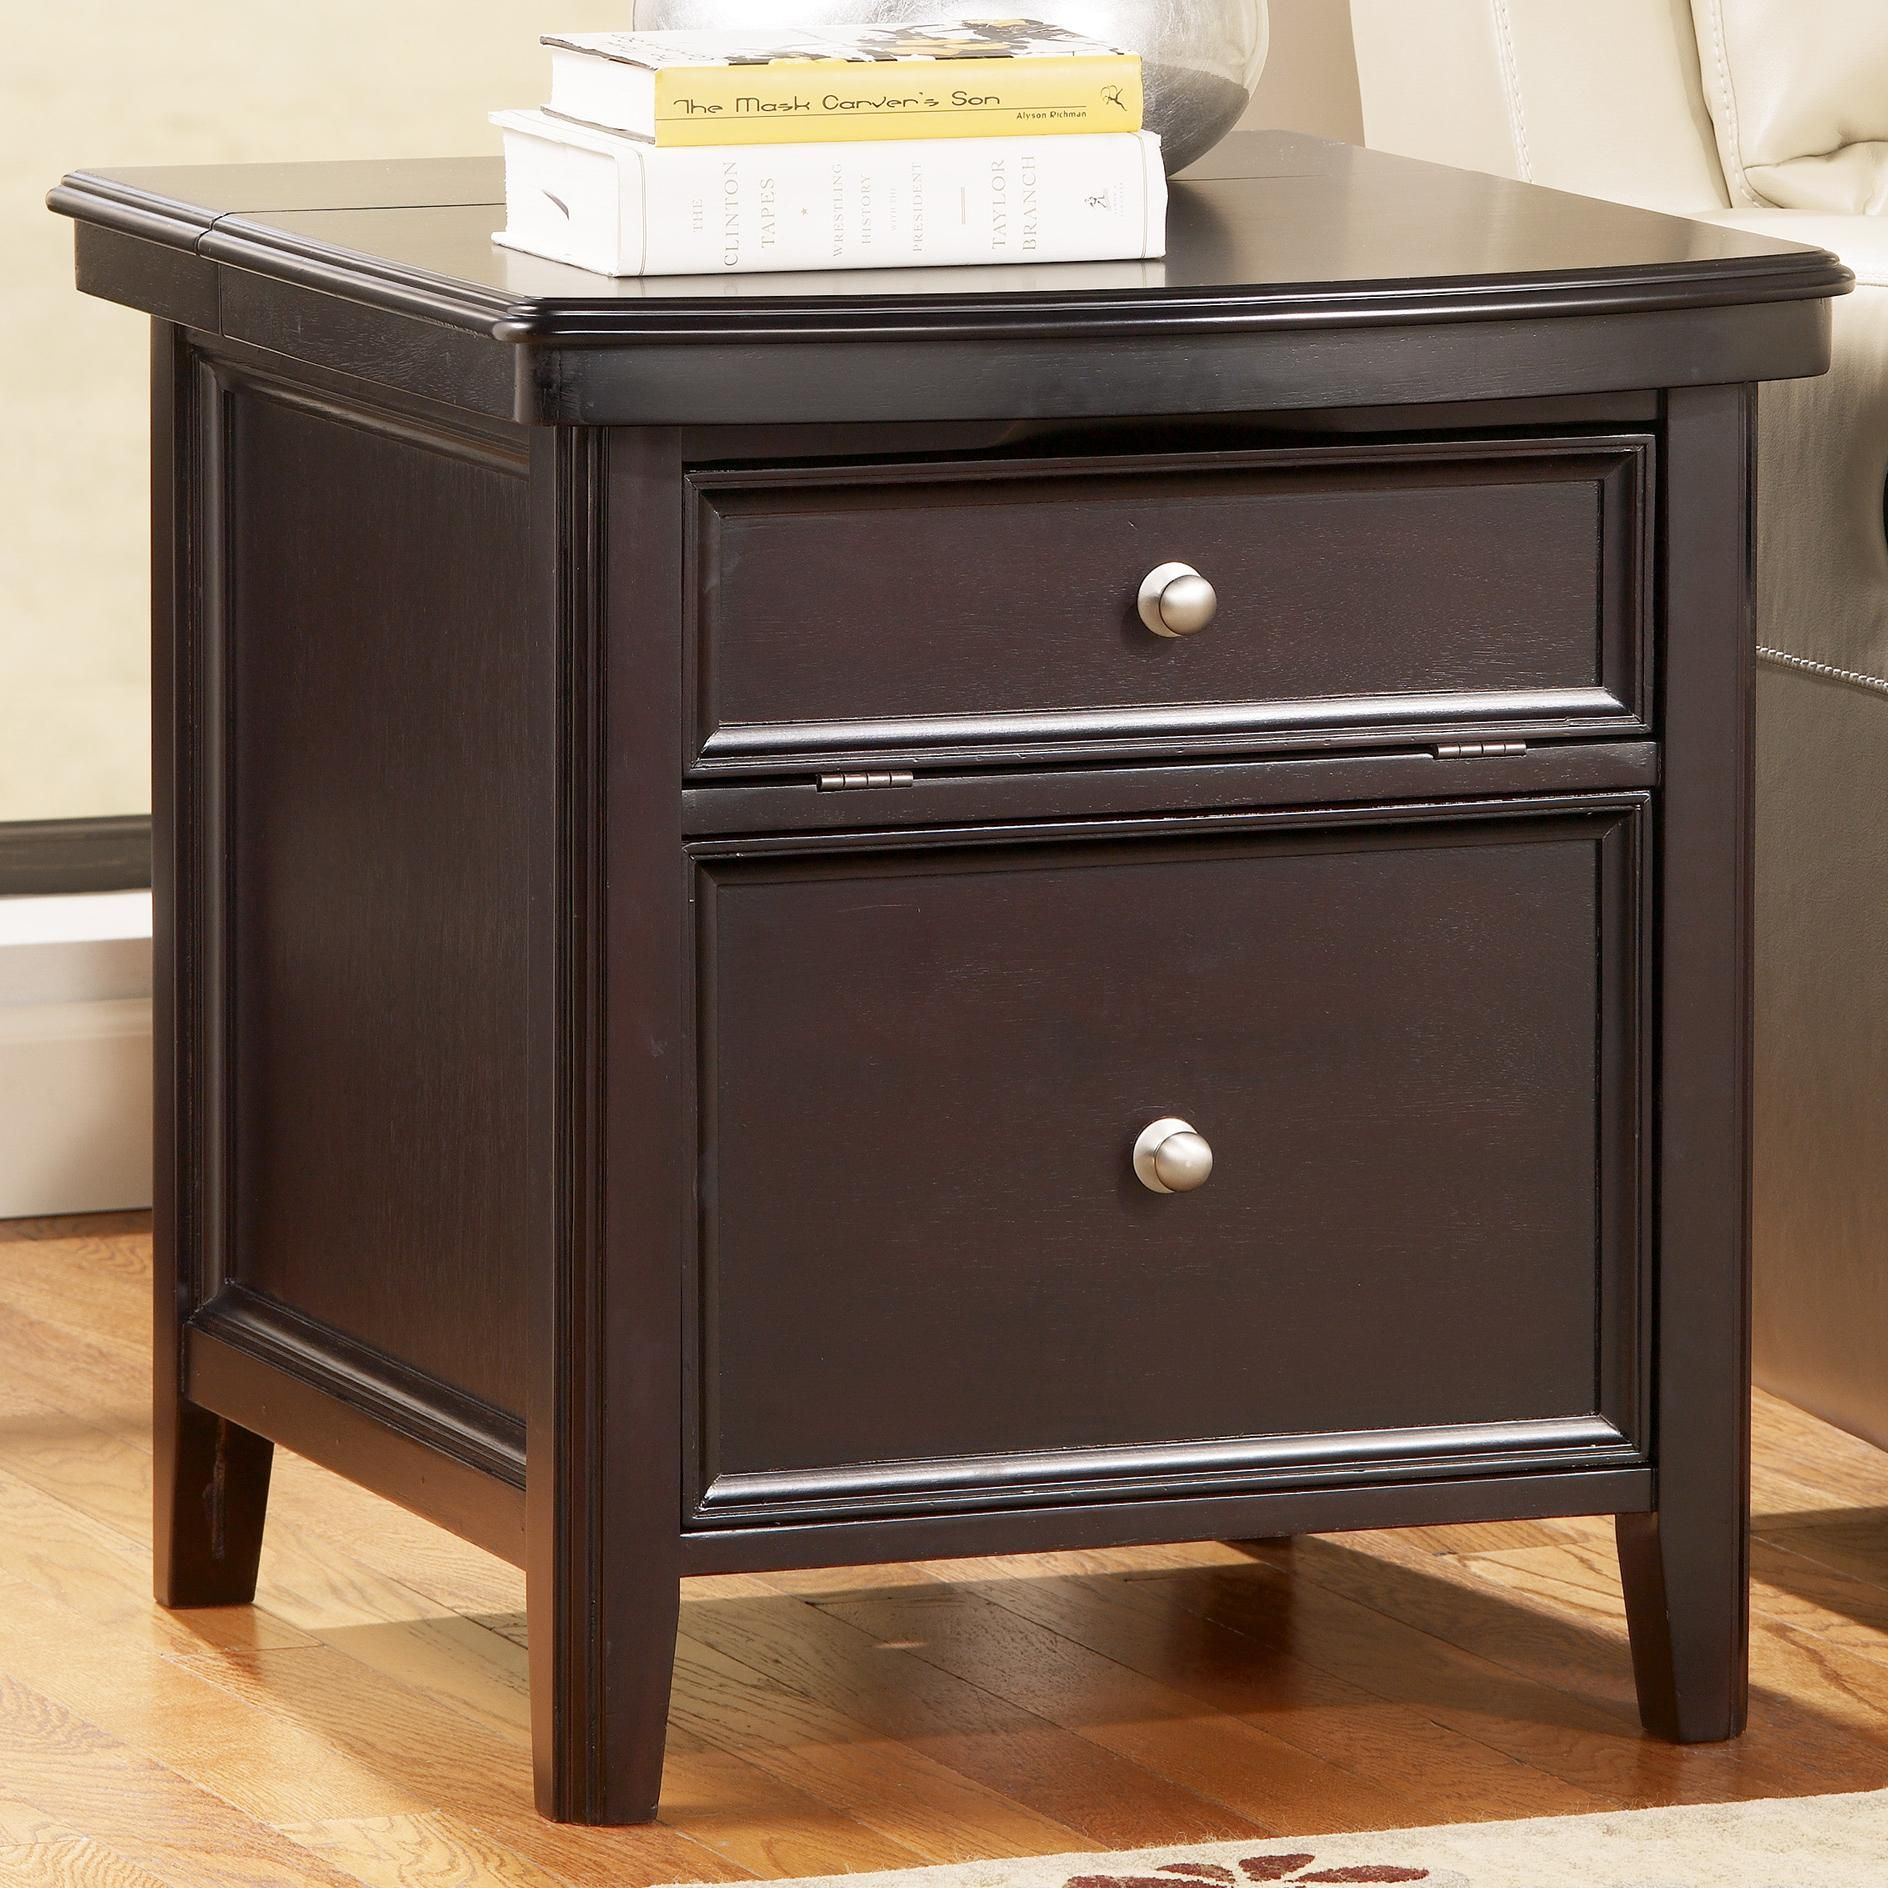 Chair Side Table With Storage Carlyle Chairside End Table With Electrical Outlet And